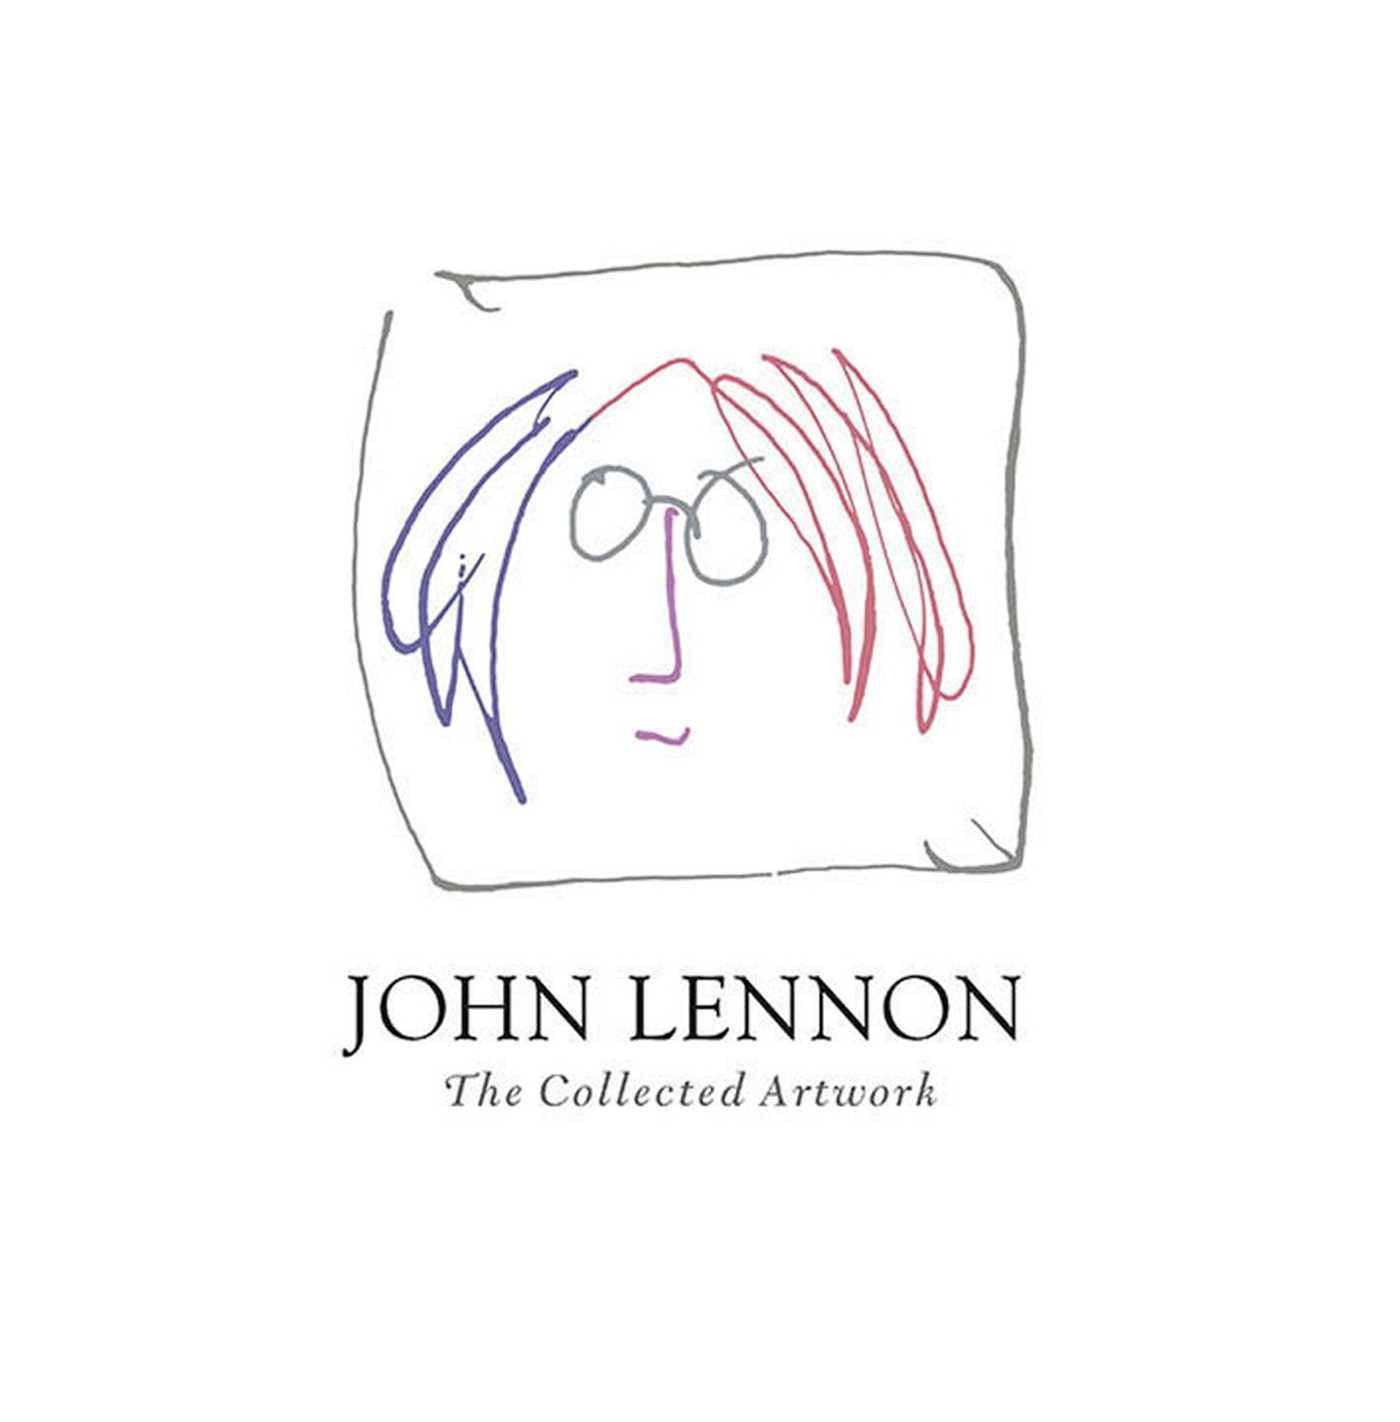 9283c87753a3 John Lennon  The Collected Artwork  Scott Gutterman